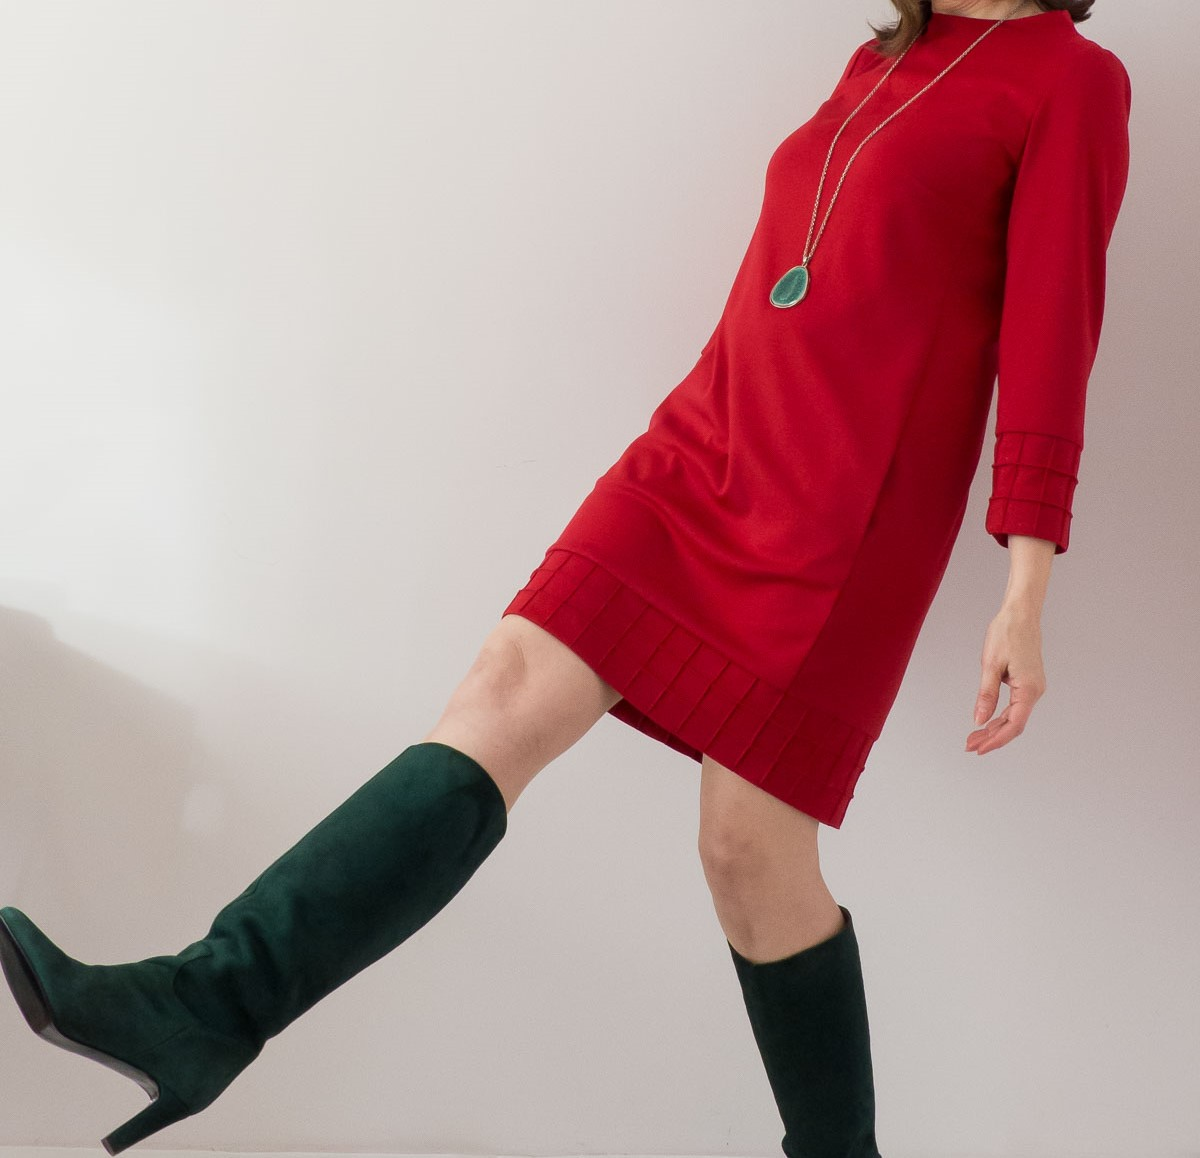 Sweater Shift Dress With a 60's Style